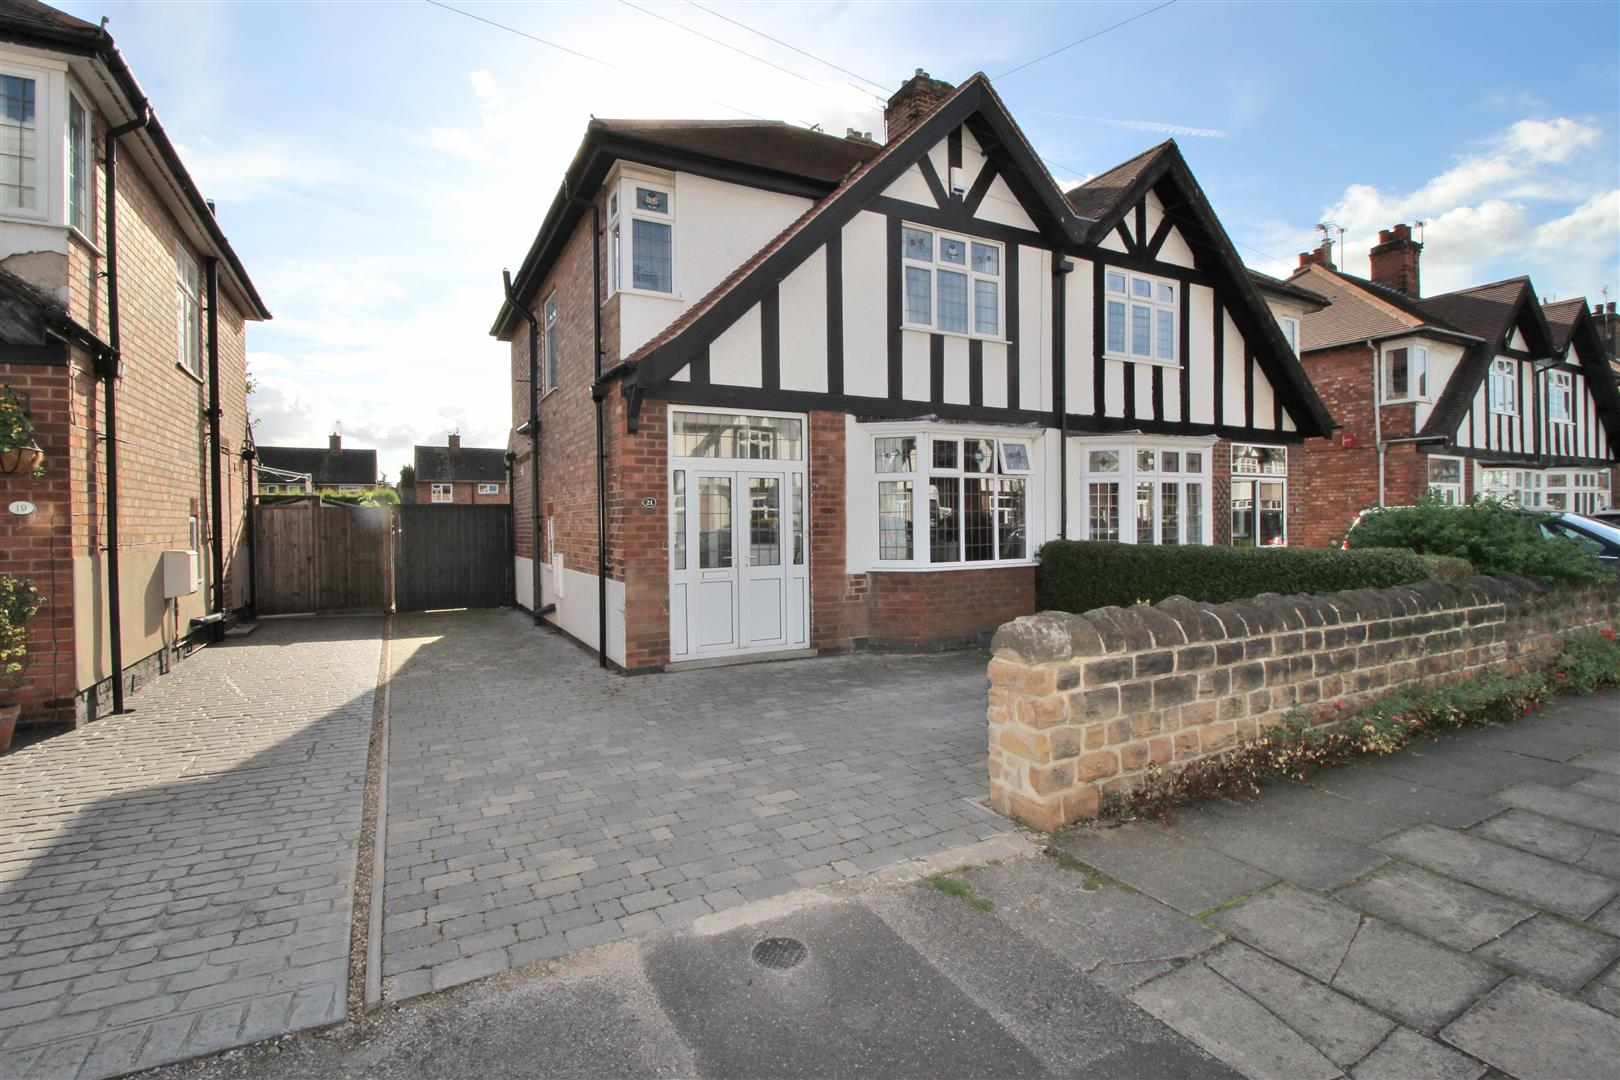 3 Bedrooms Semi Detached House for sale in Queens Drive, Beeston, Nottingham